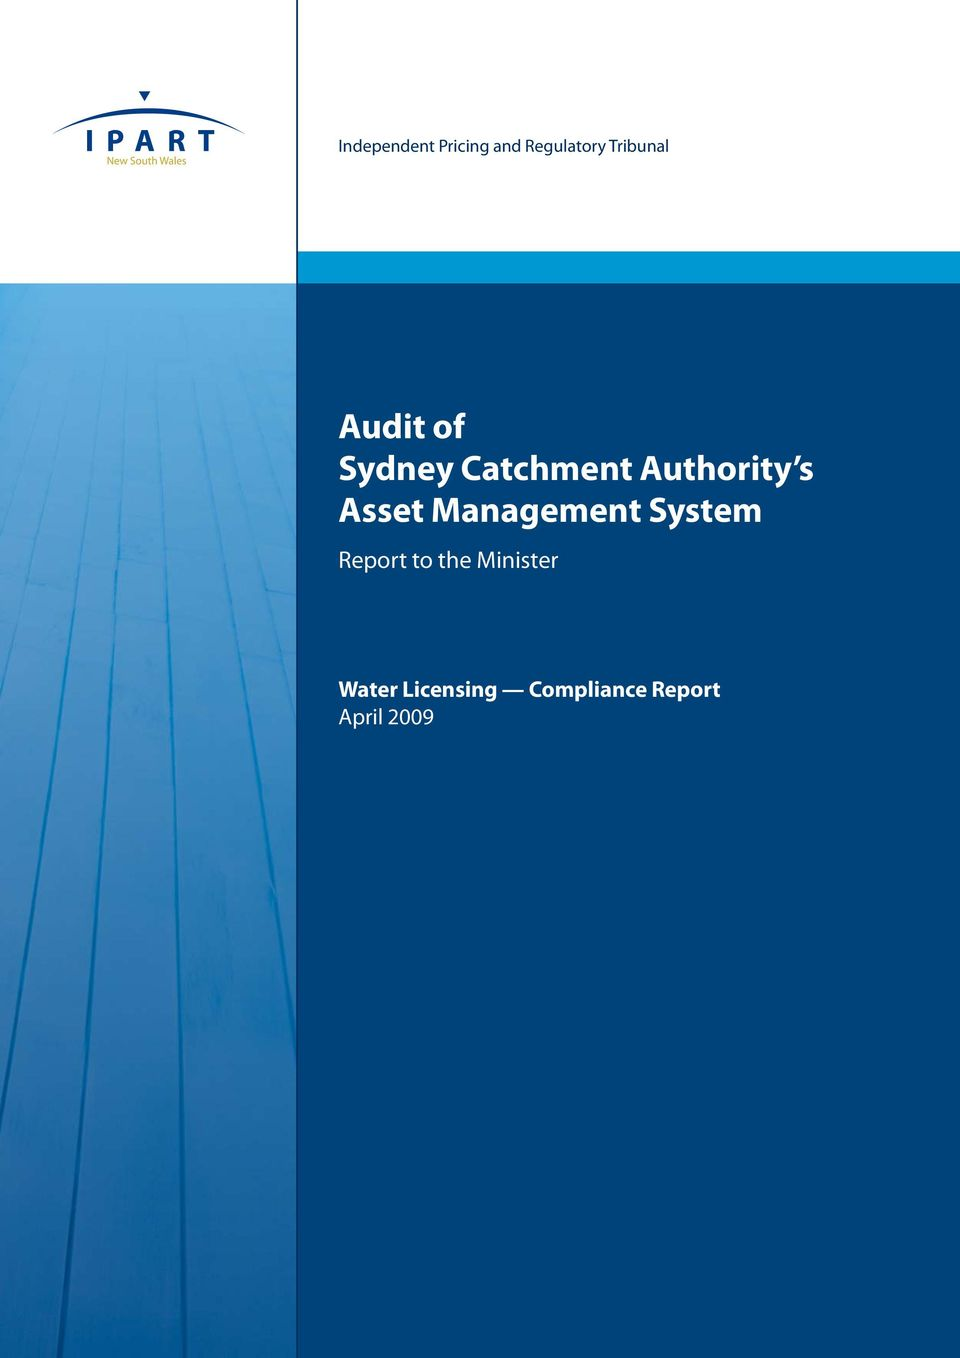 Management System Report to the Minister